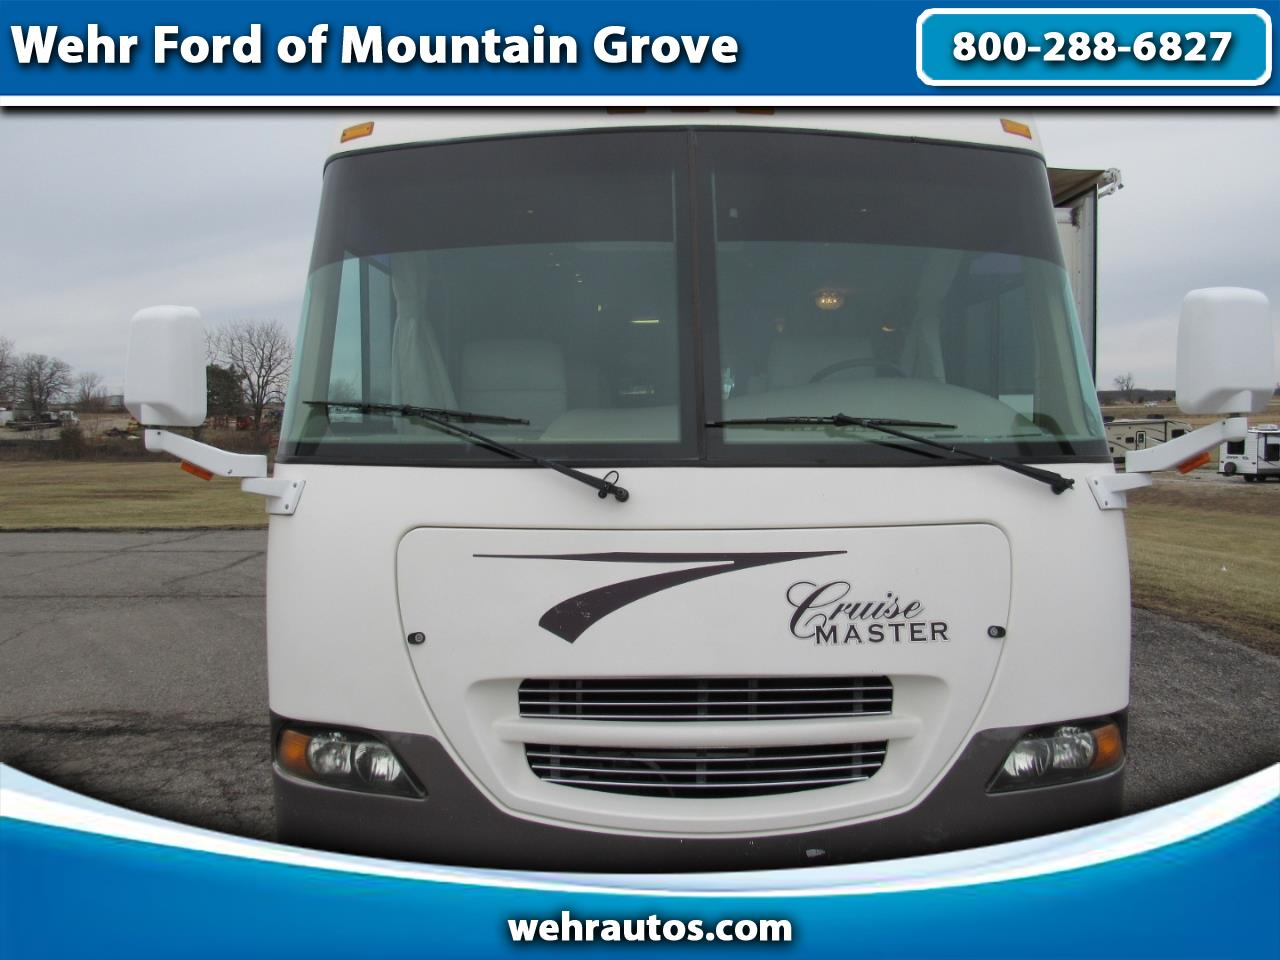 2001 Ford Super Duty F-550 Motorhome Georgie Boy Cruise Master 3600DS